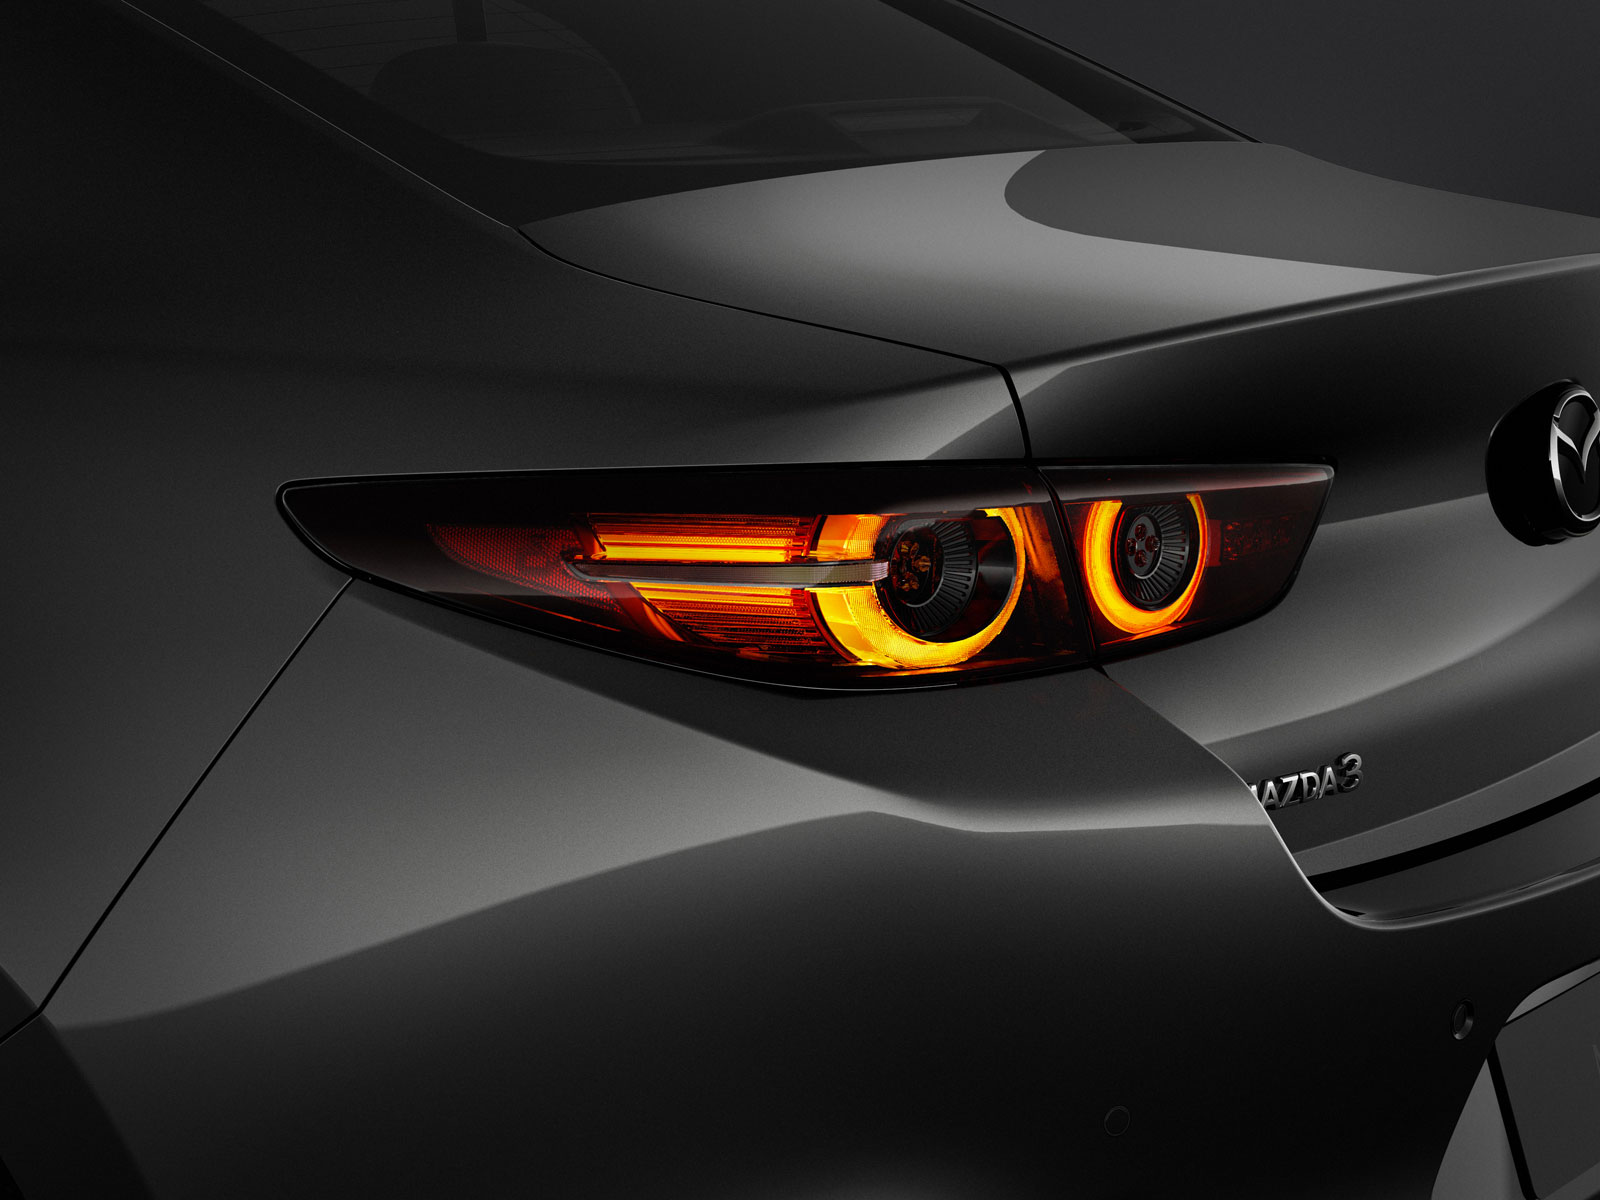 New Mazda3 Sedan Tail Light Design